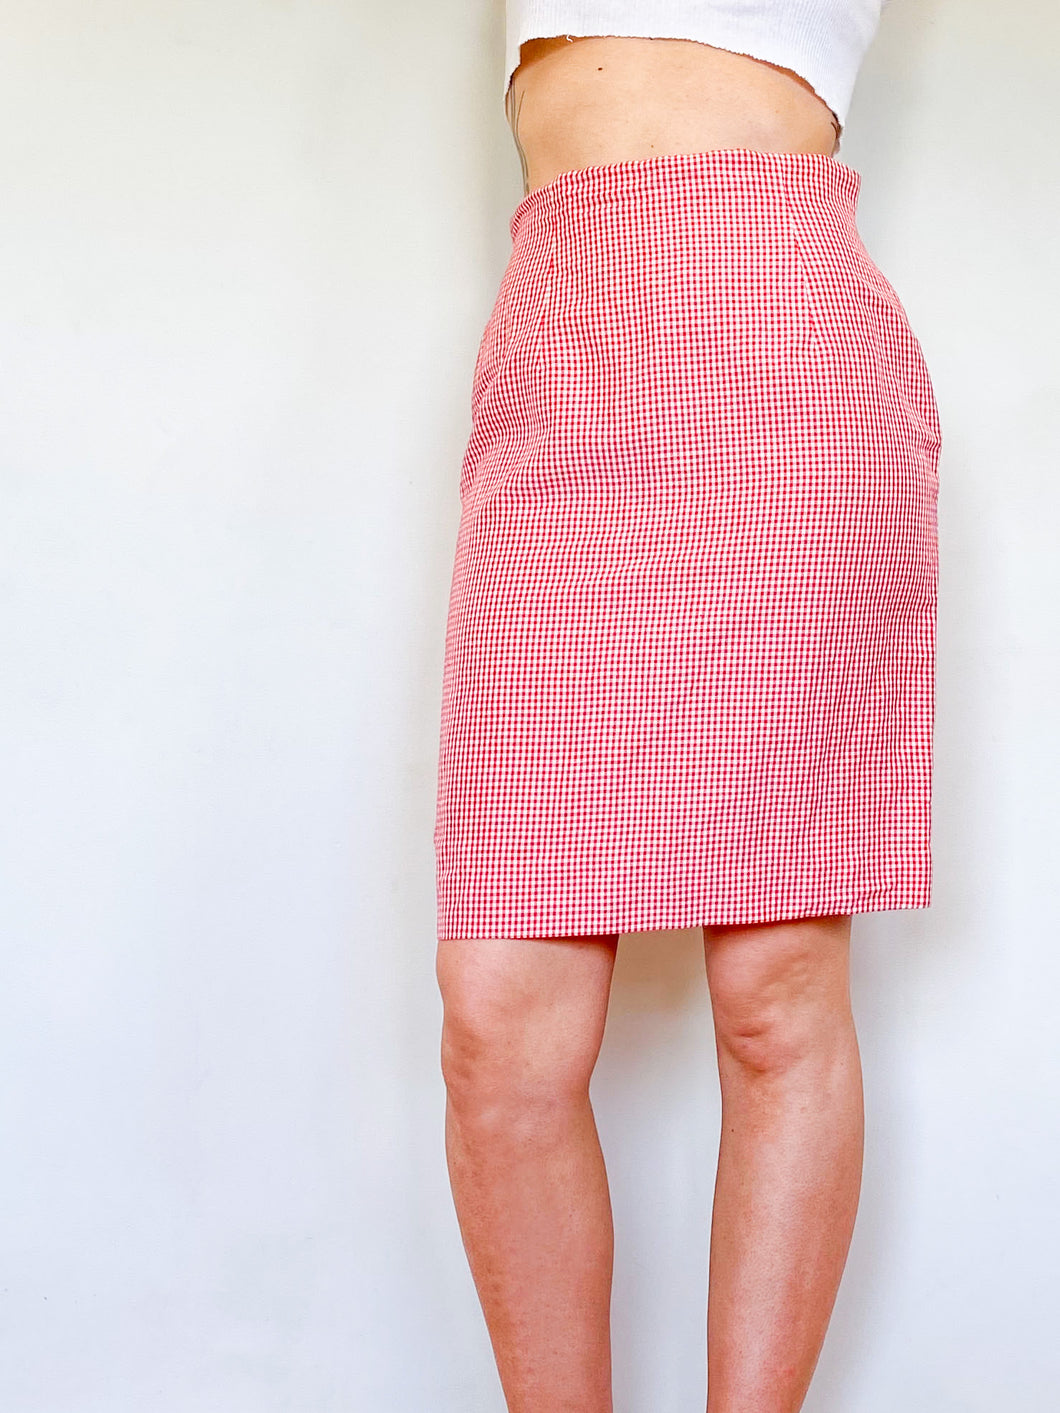 Red Gingham Skirt (M)